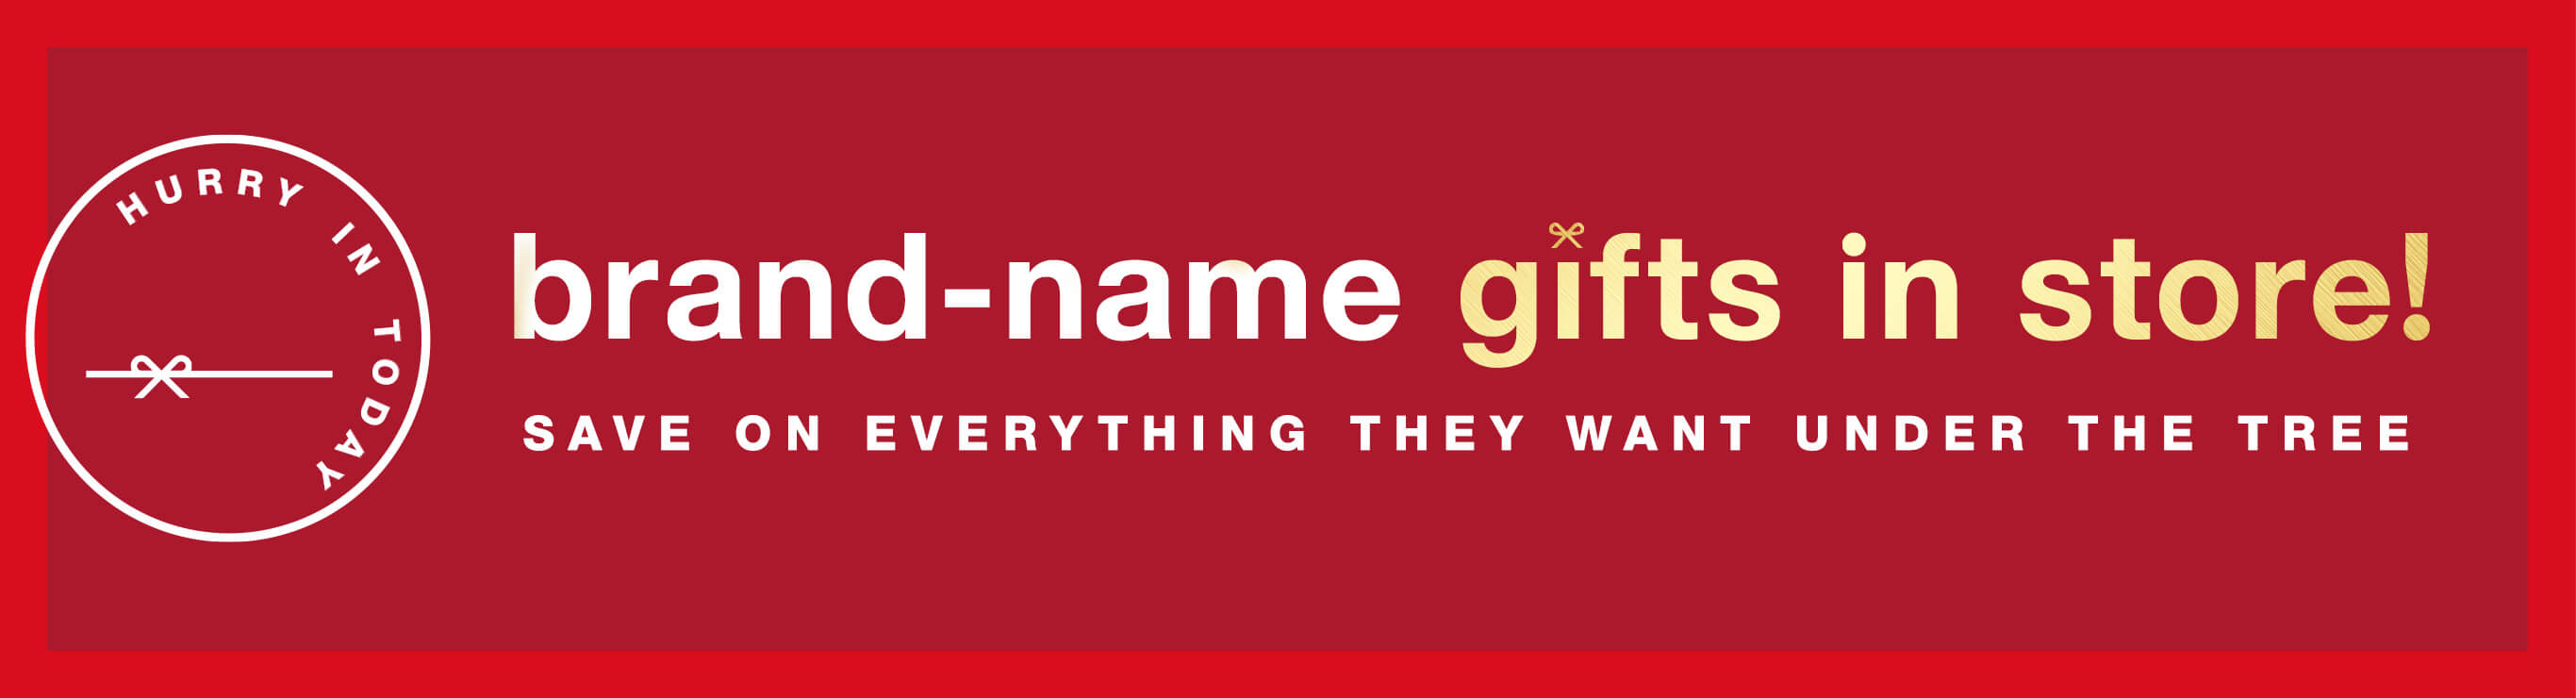 Brand-Name Gifts In Store! Save on Everything They Want Under the Tree